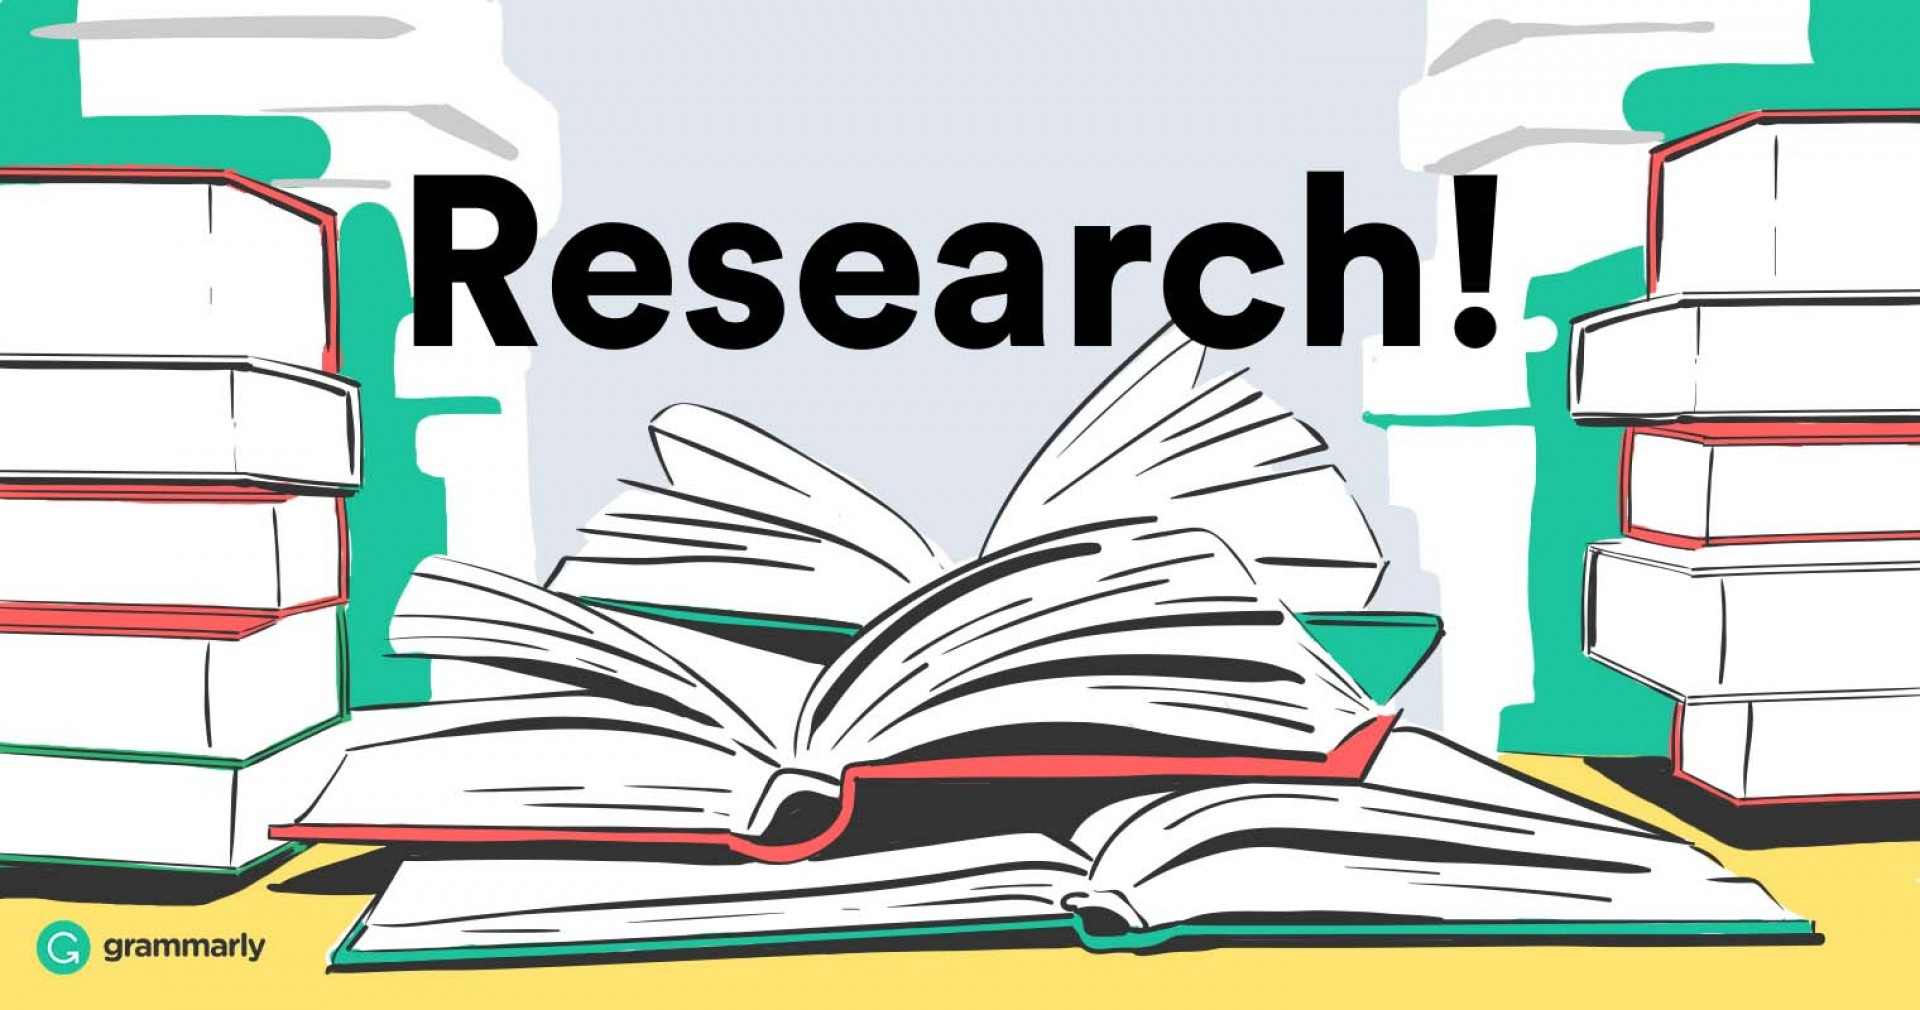 019 Steps For Writing Research Breathtaking A Paper In Ppt 10 To Write Basic Easy 1920